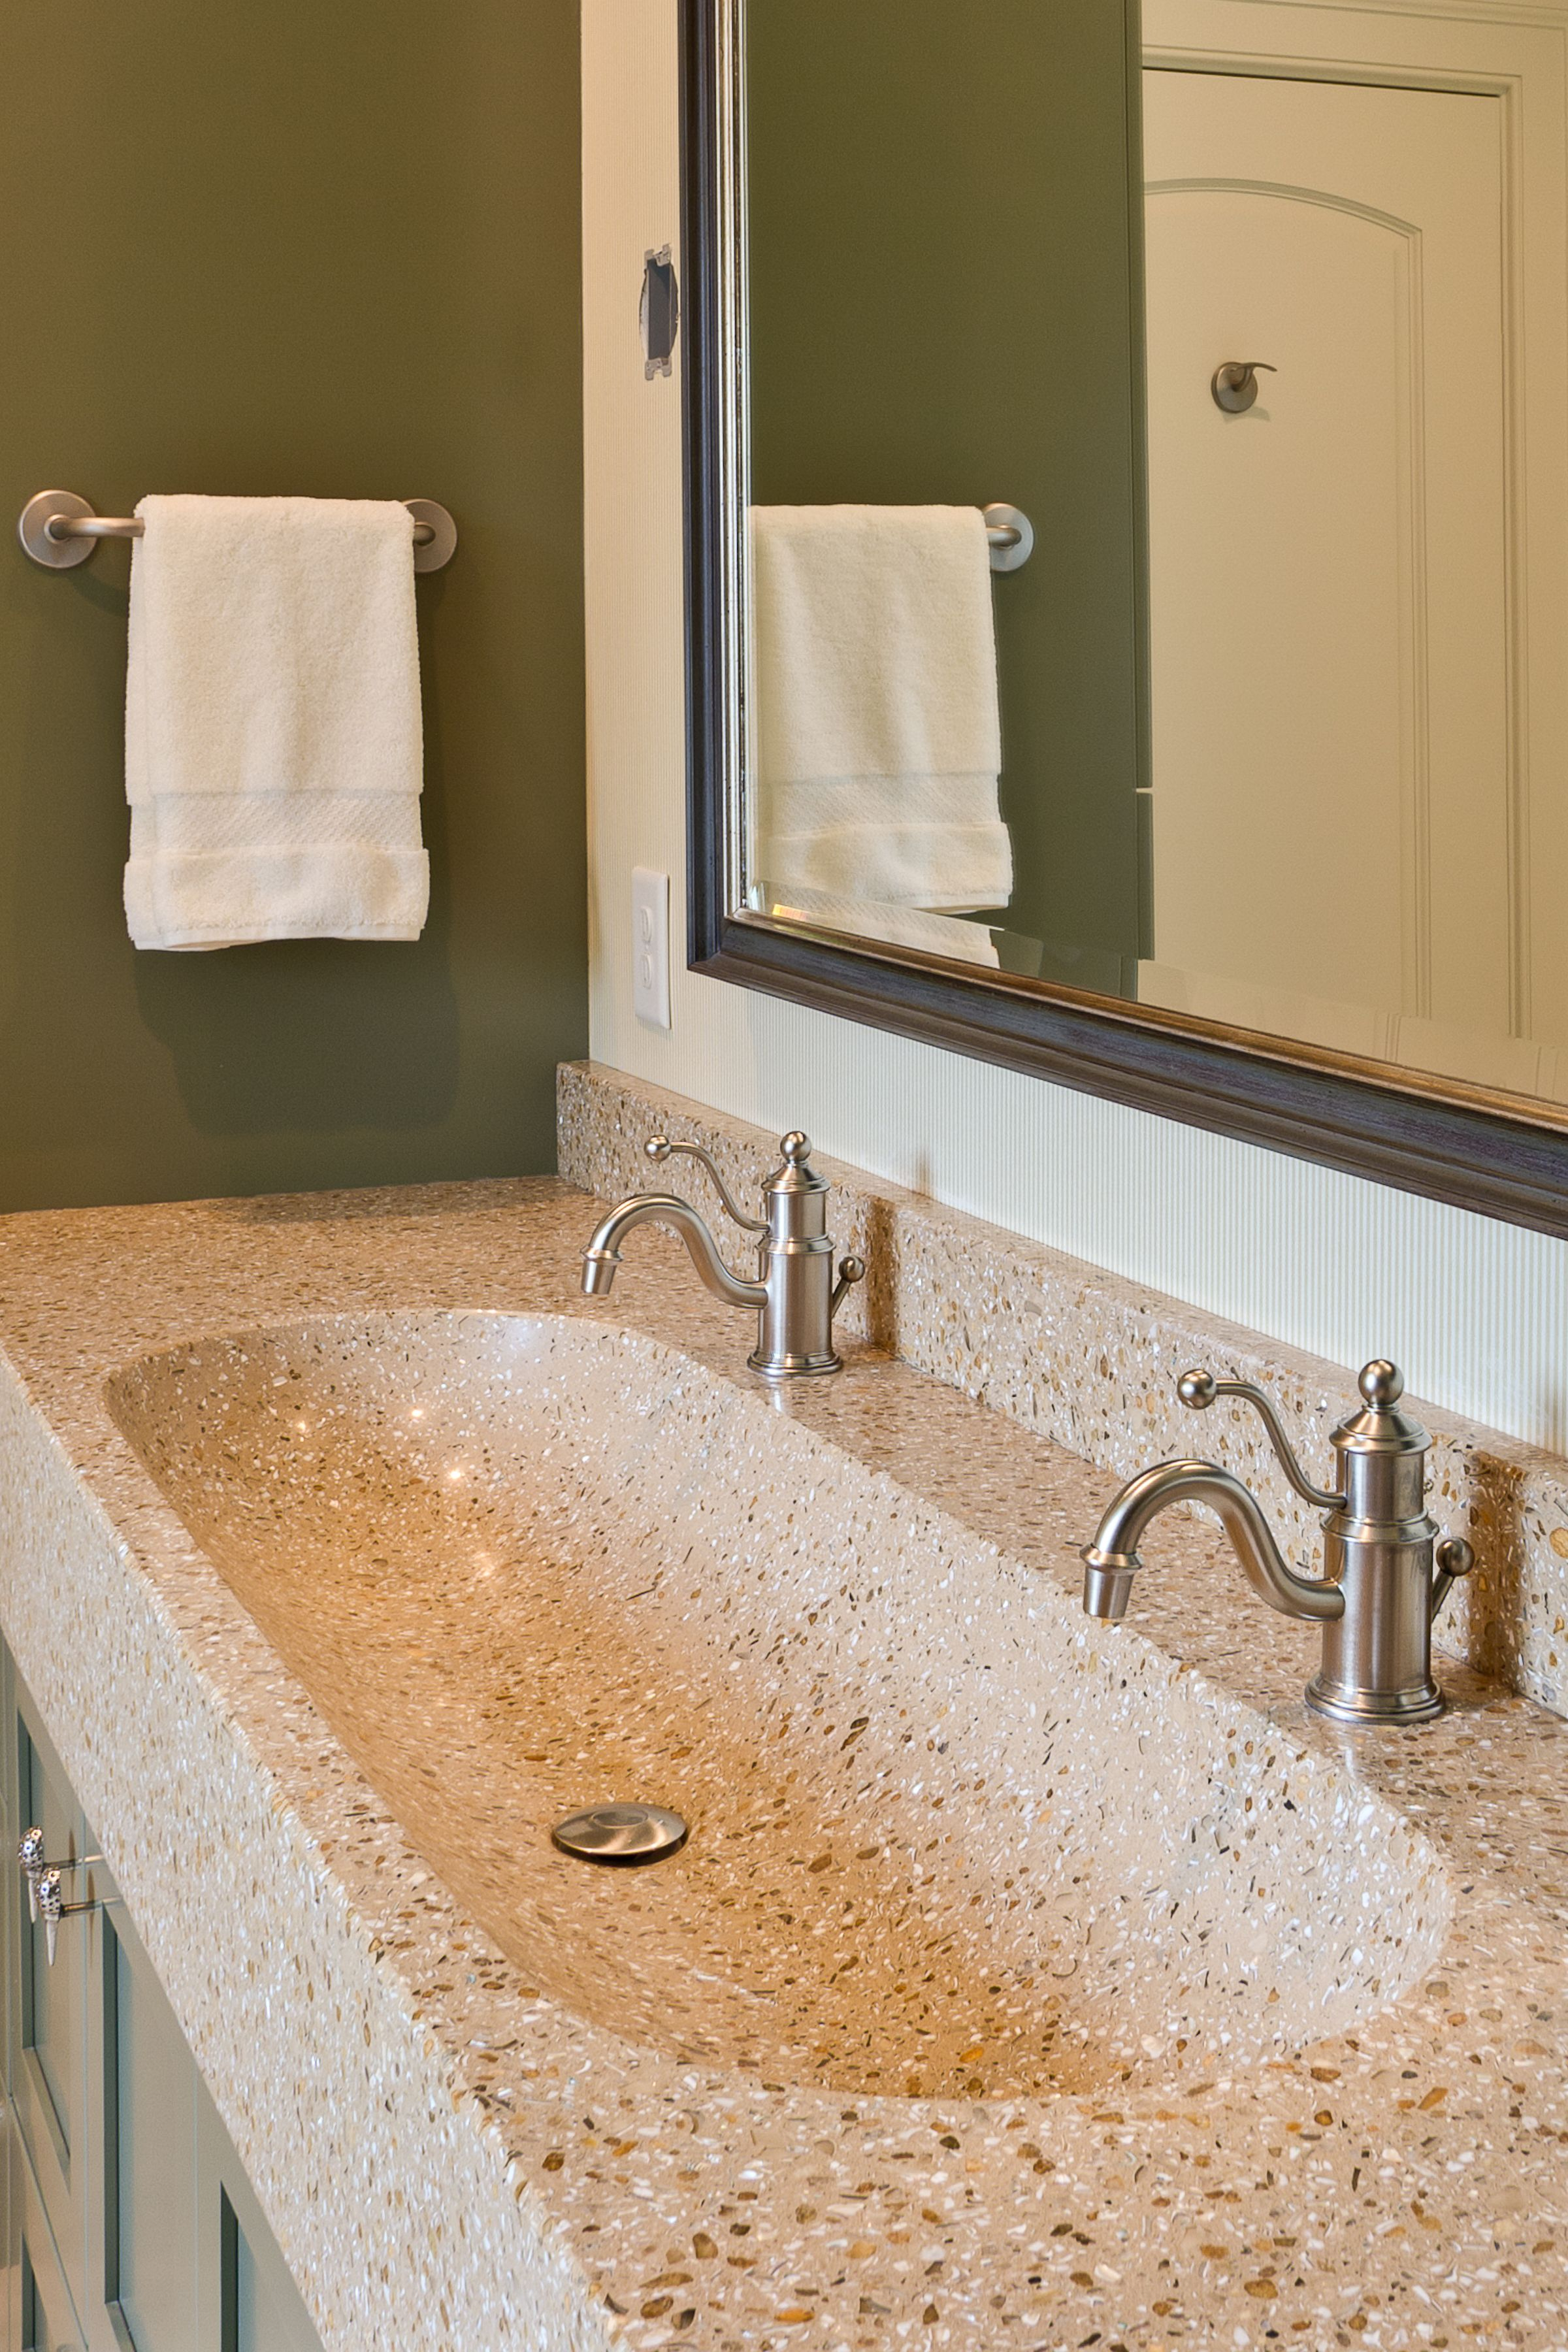 Double sink for bathroom Great in both the home and for